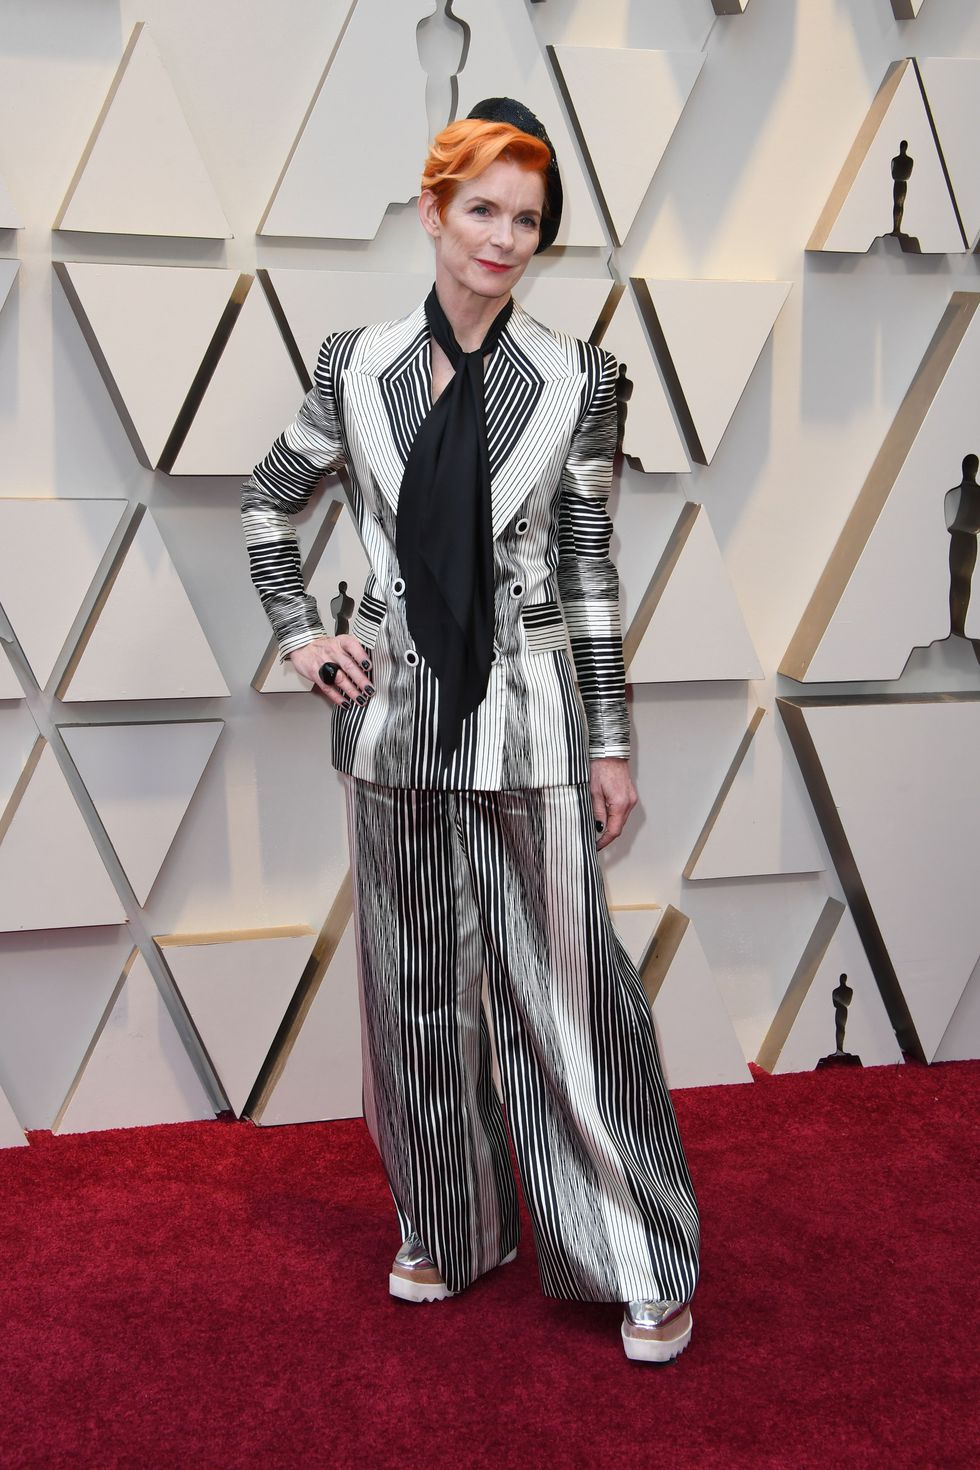 [image description: A blonde, white woman in a black and white striped suit poses with a hand on her hip on the Red Carpet] via Getty Images.